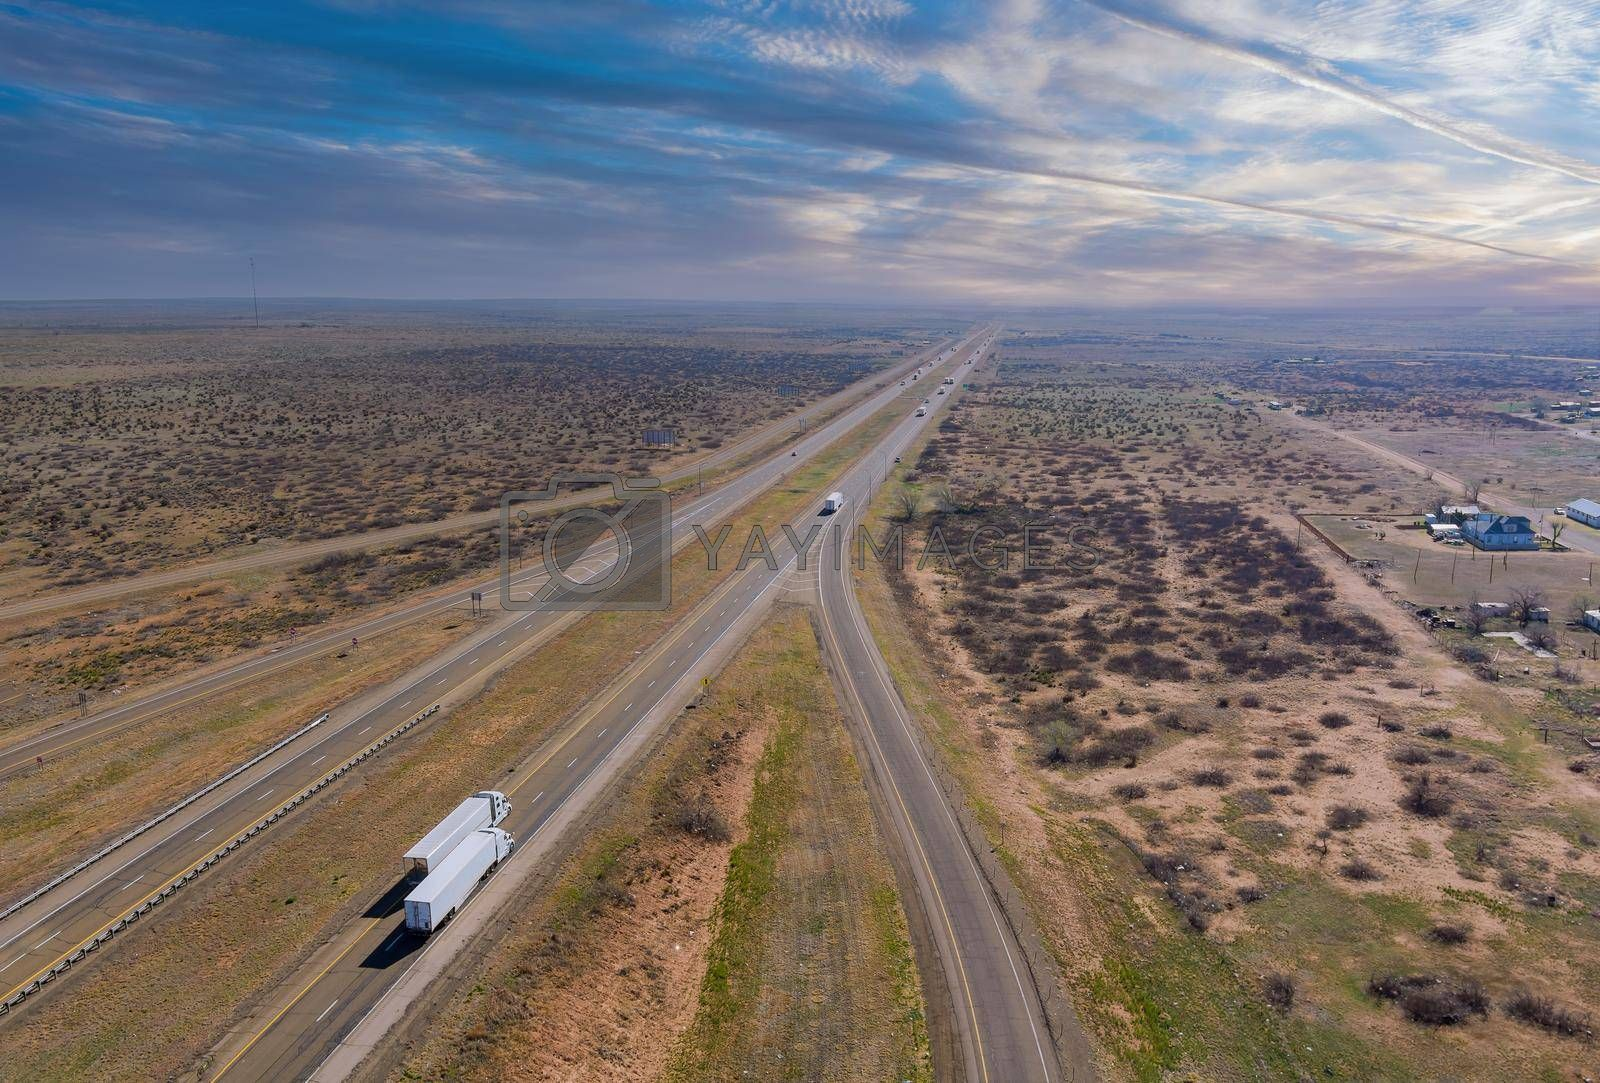 Desert road aerial of a new two lane road surrounded by desert landscape near San Jon New Mexico USA